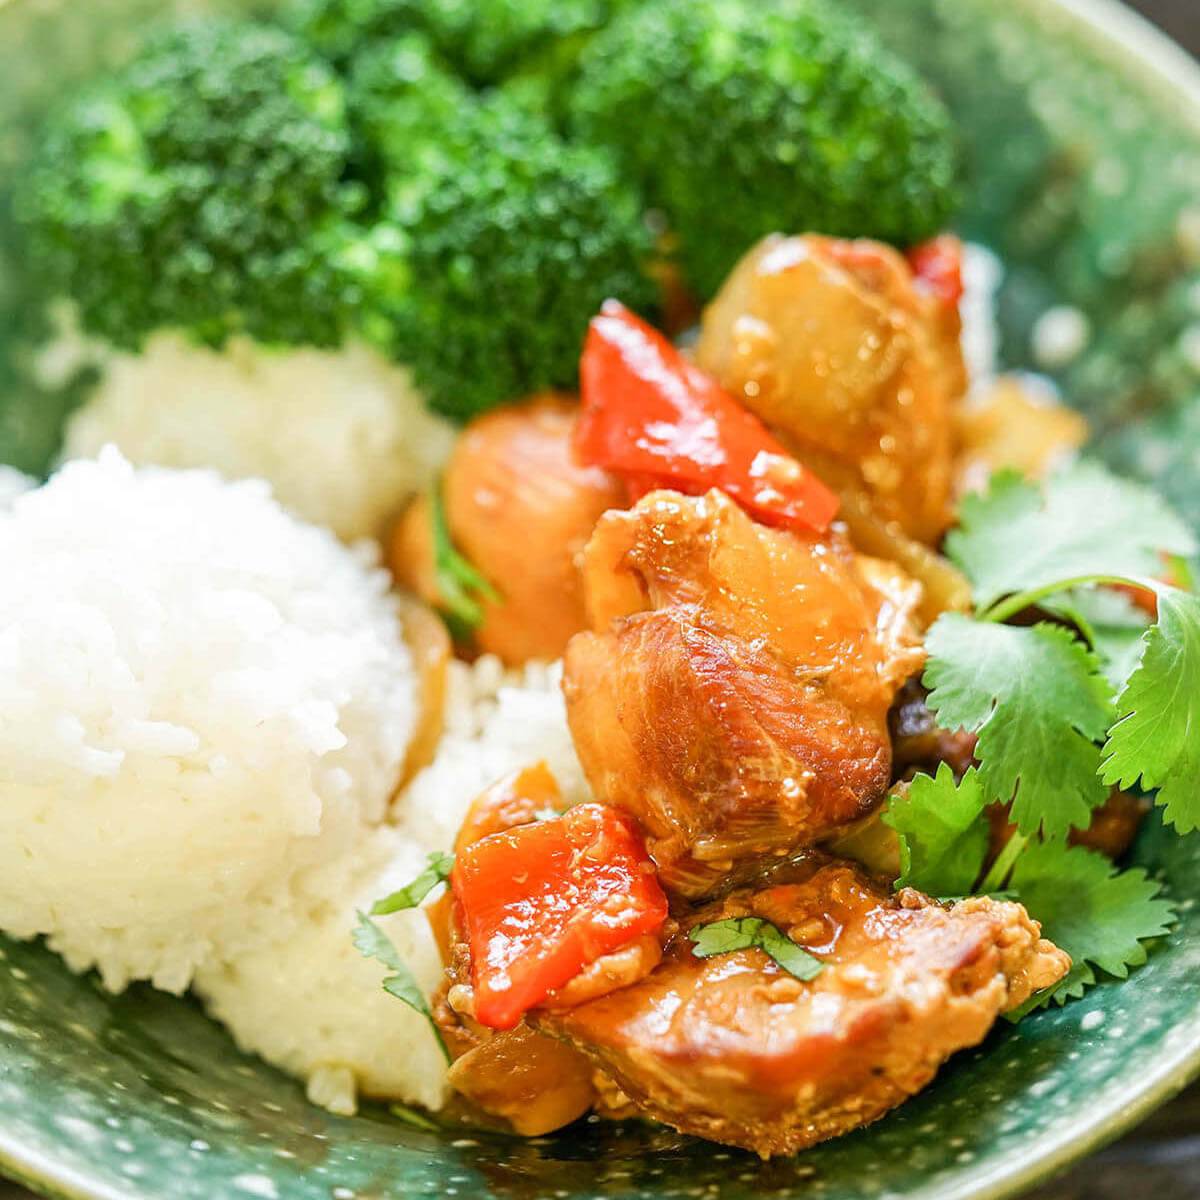 Honey sriracha chicken served with rice and broccoli in bowl.